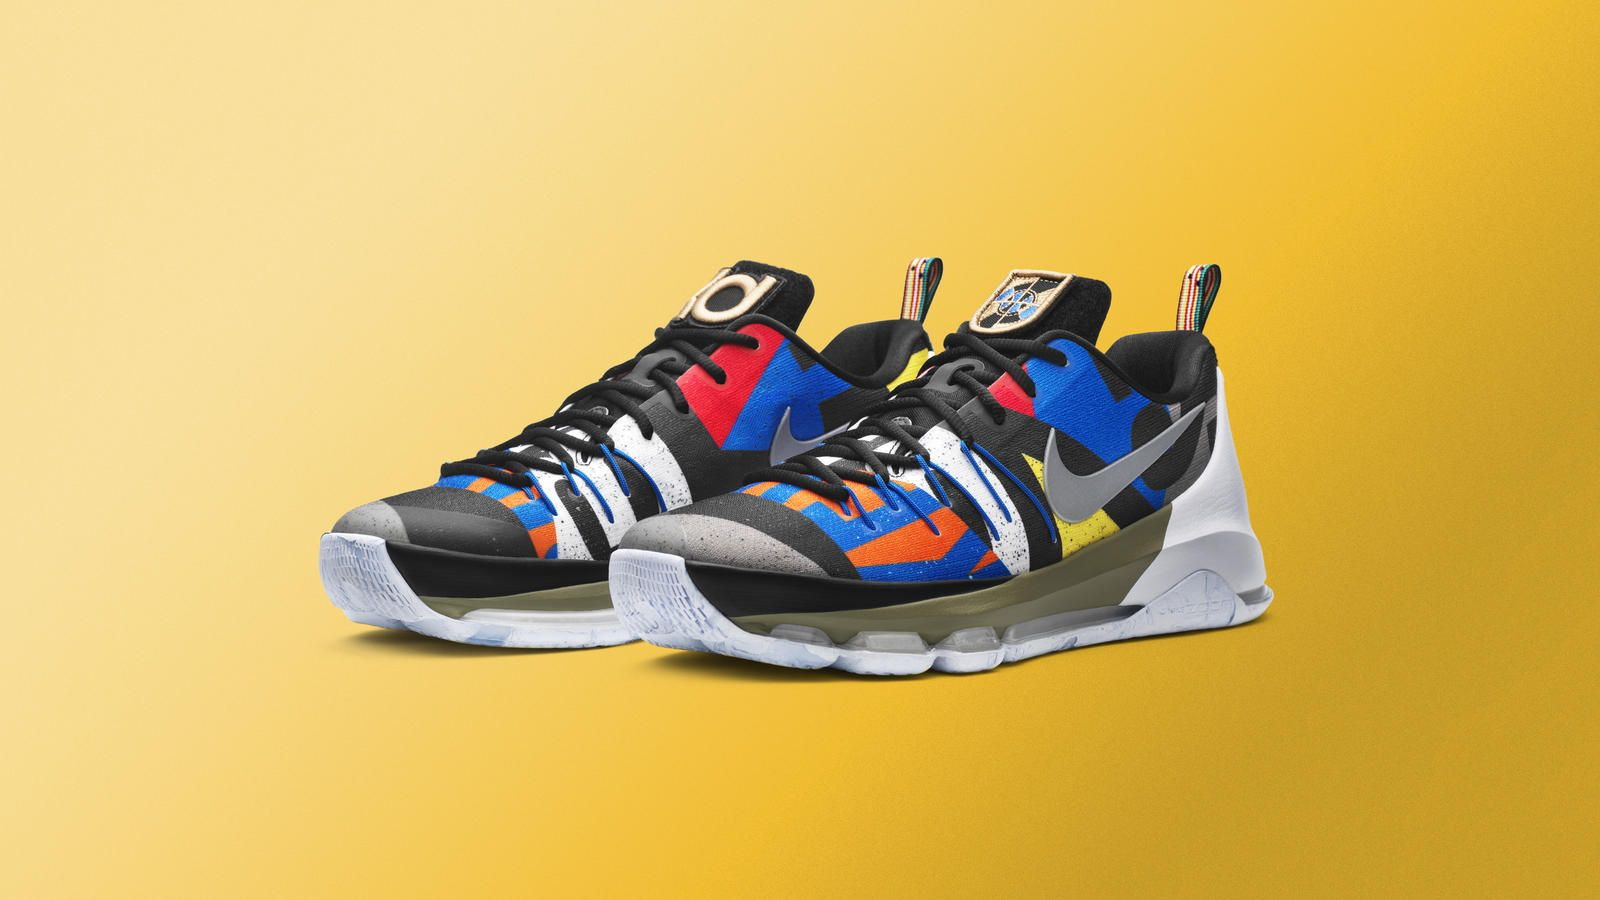 The Nike KD 8 All Star features international inspiration thanks to  colorful flags all over the